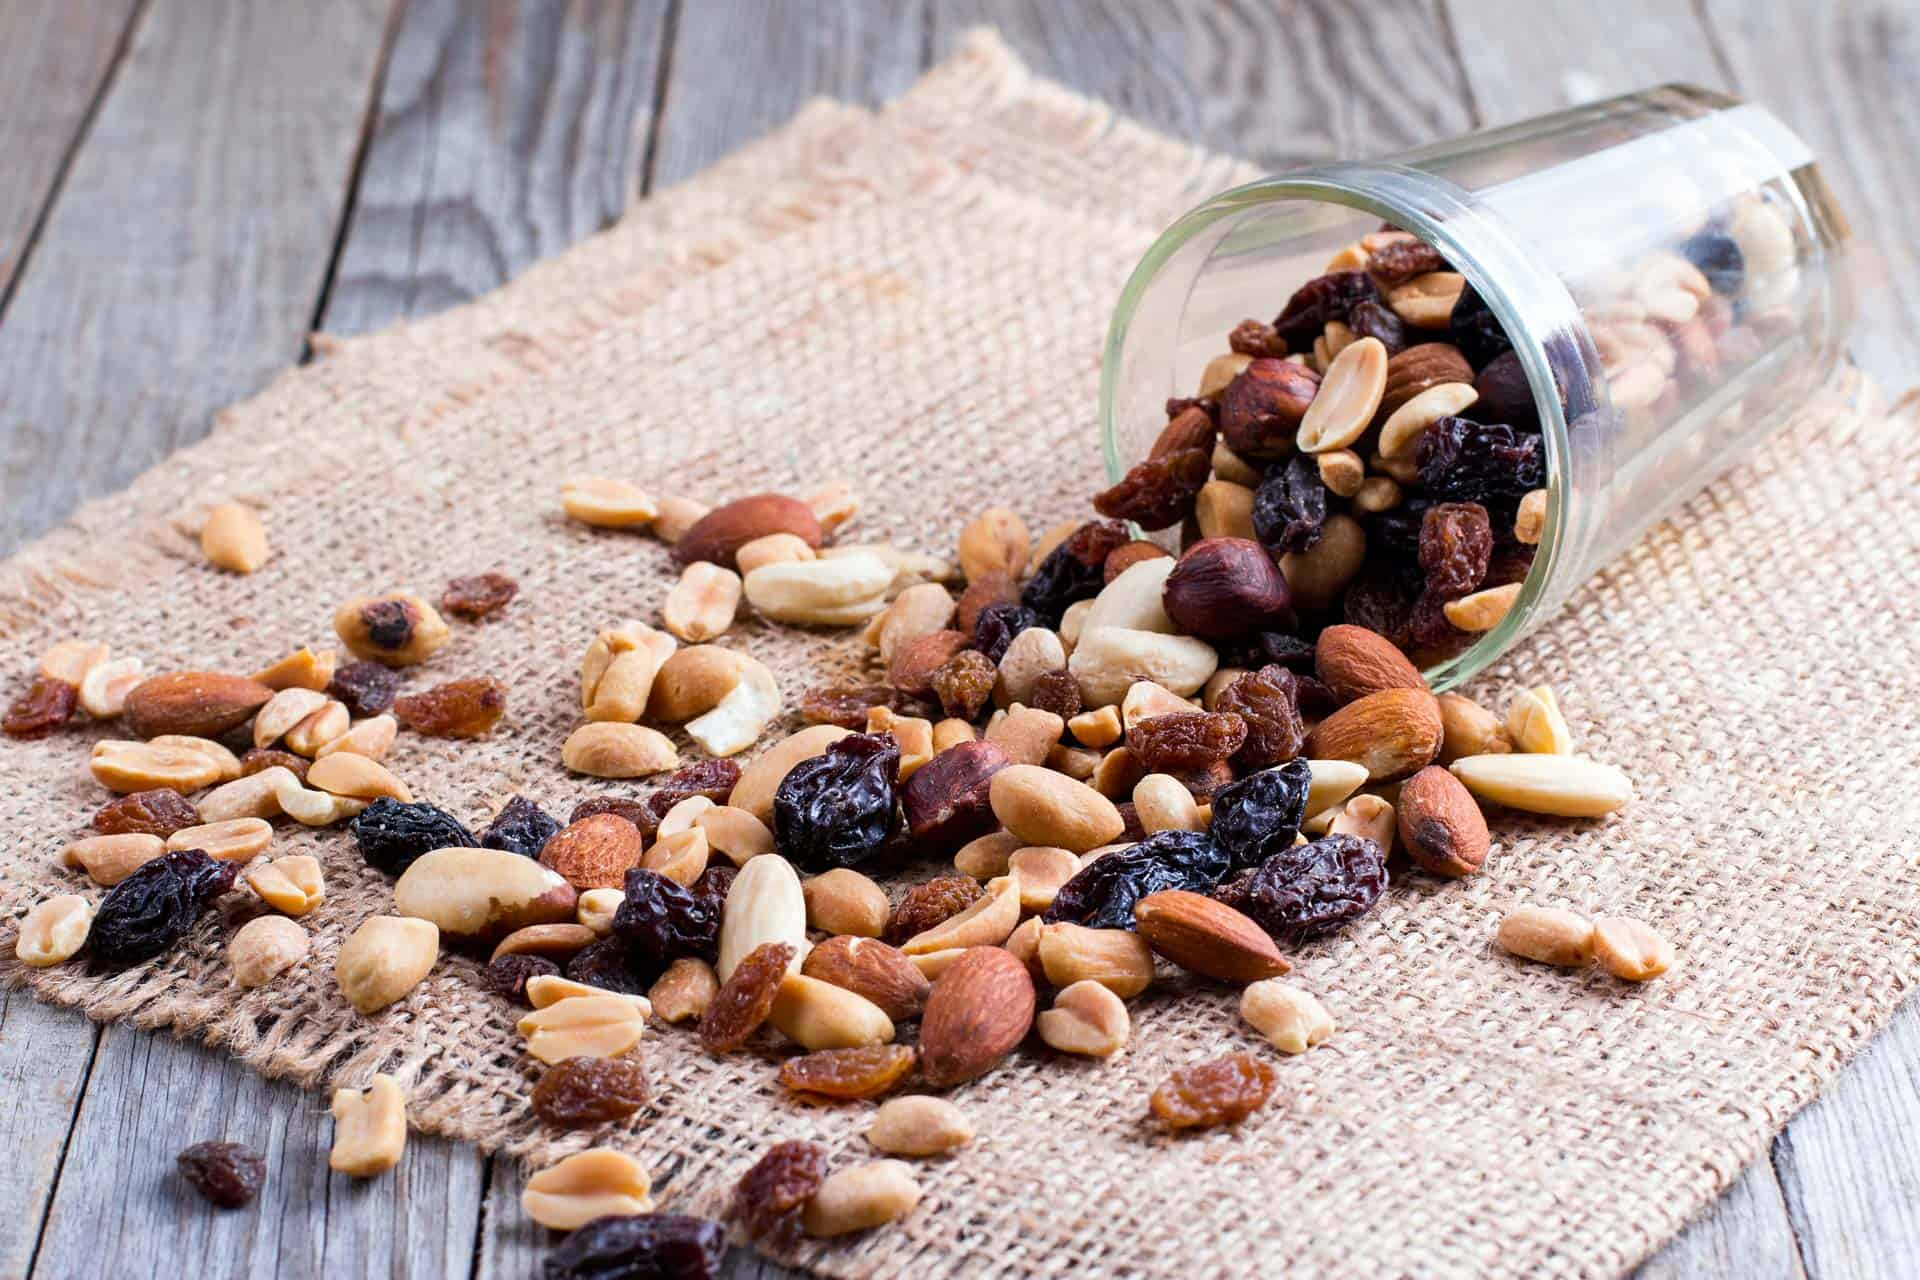 Popular zero waste snacks of nuts and dried fruit spilling from jar onto napkin